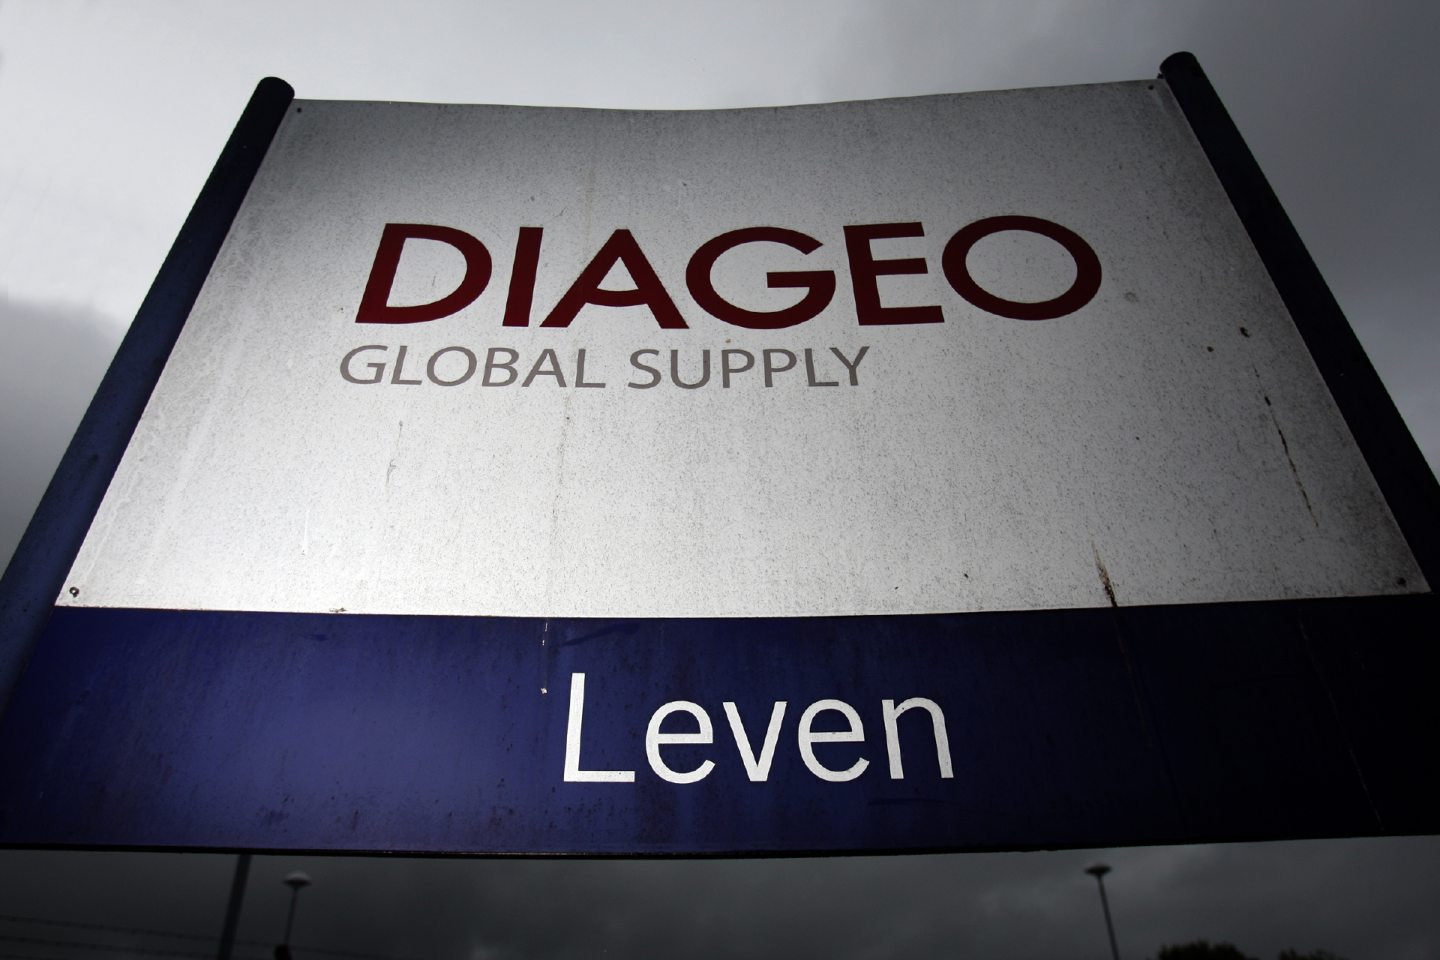 Diageo has a global supply base in Leven.